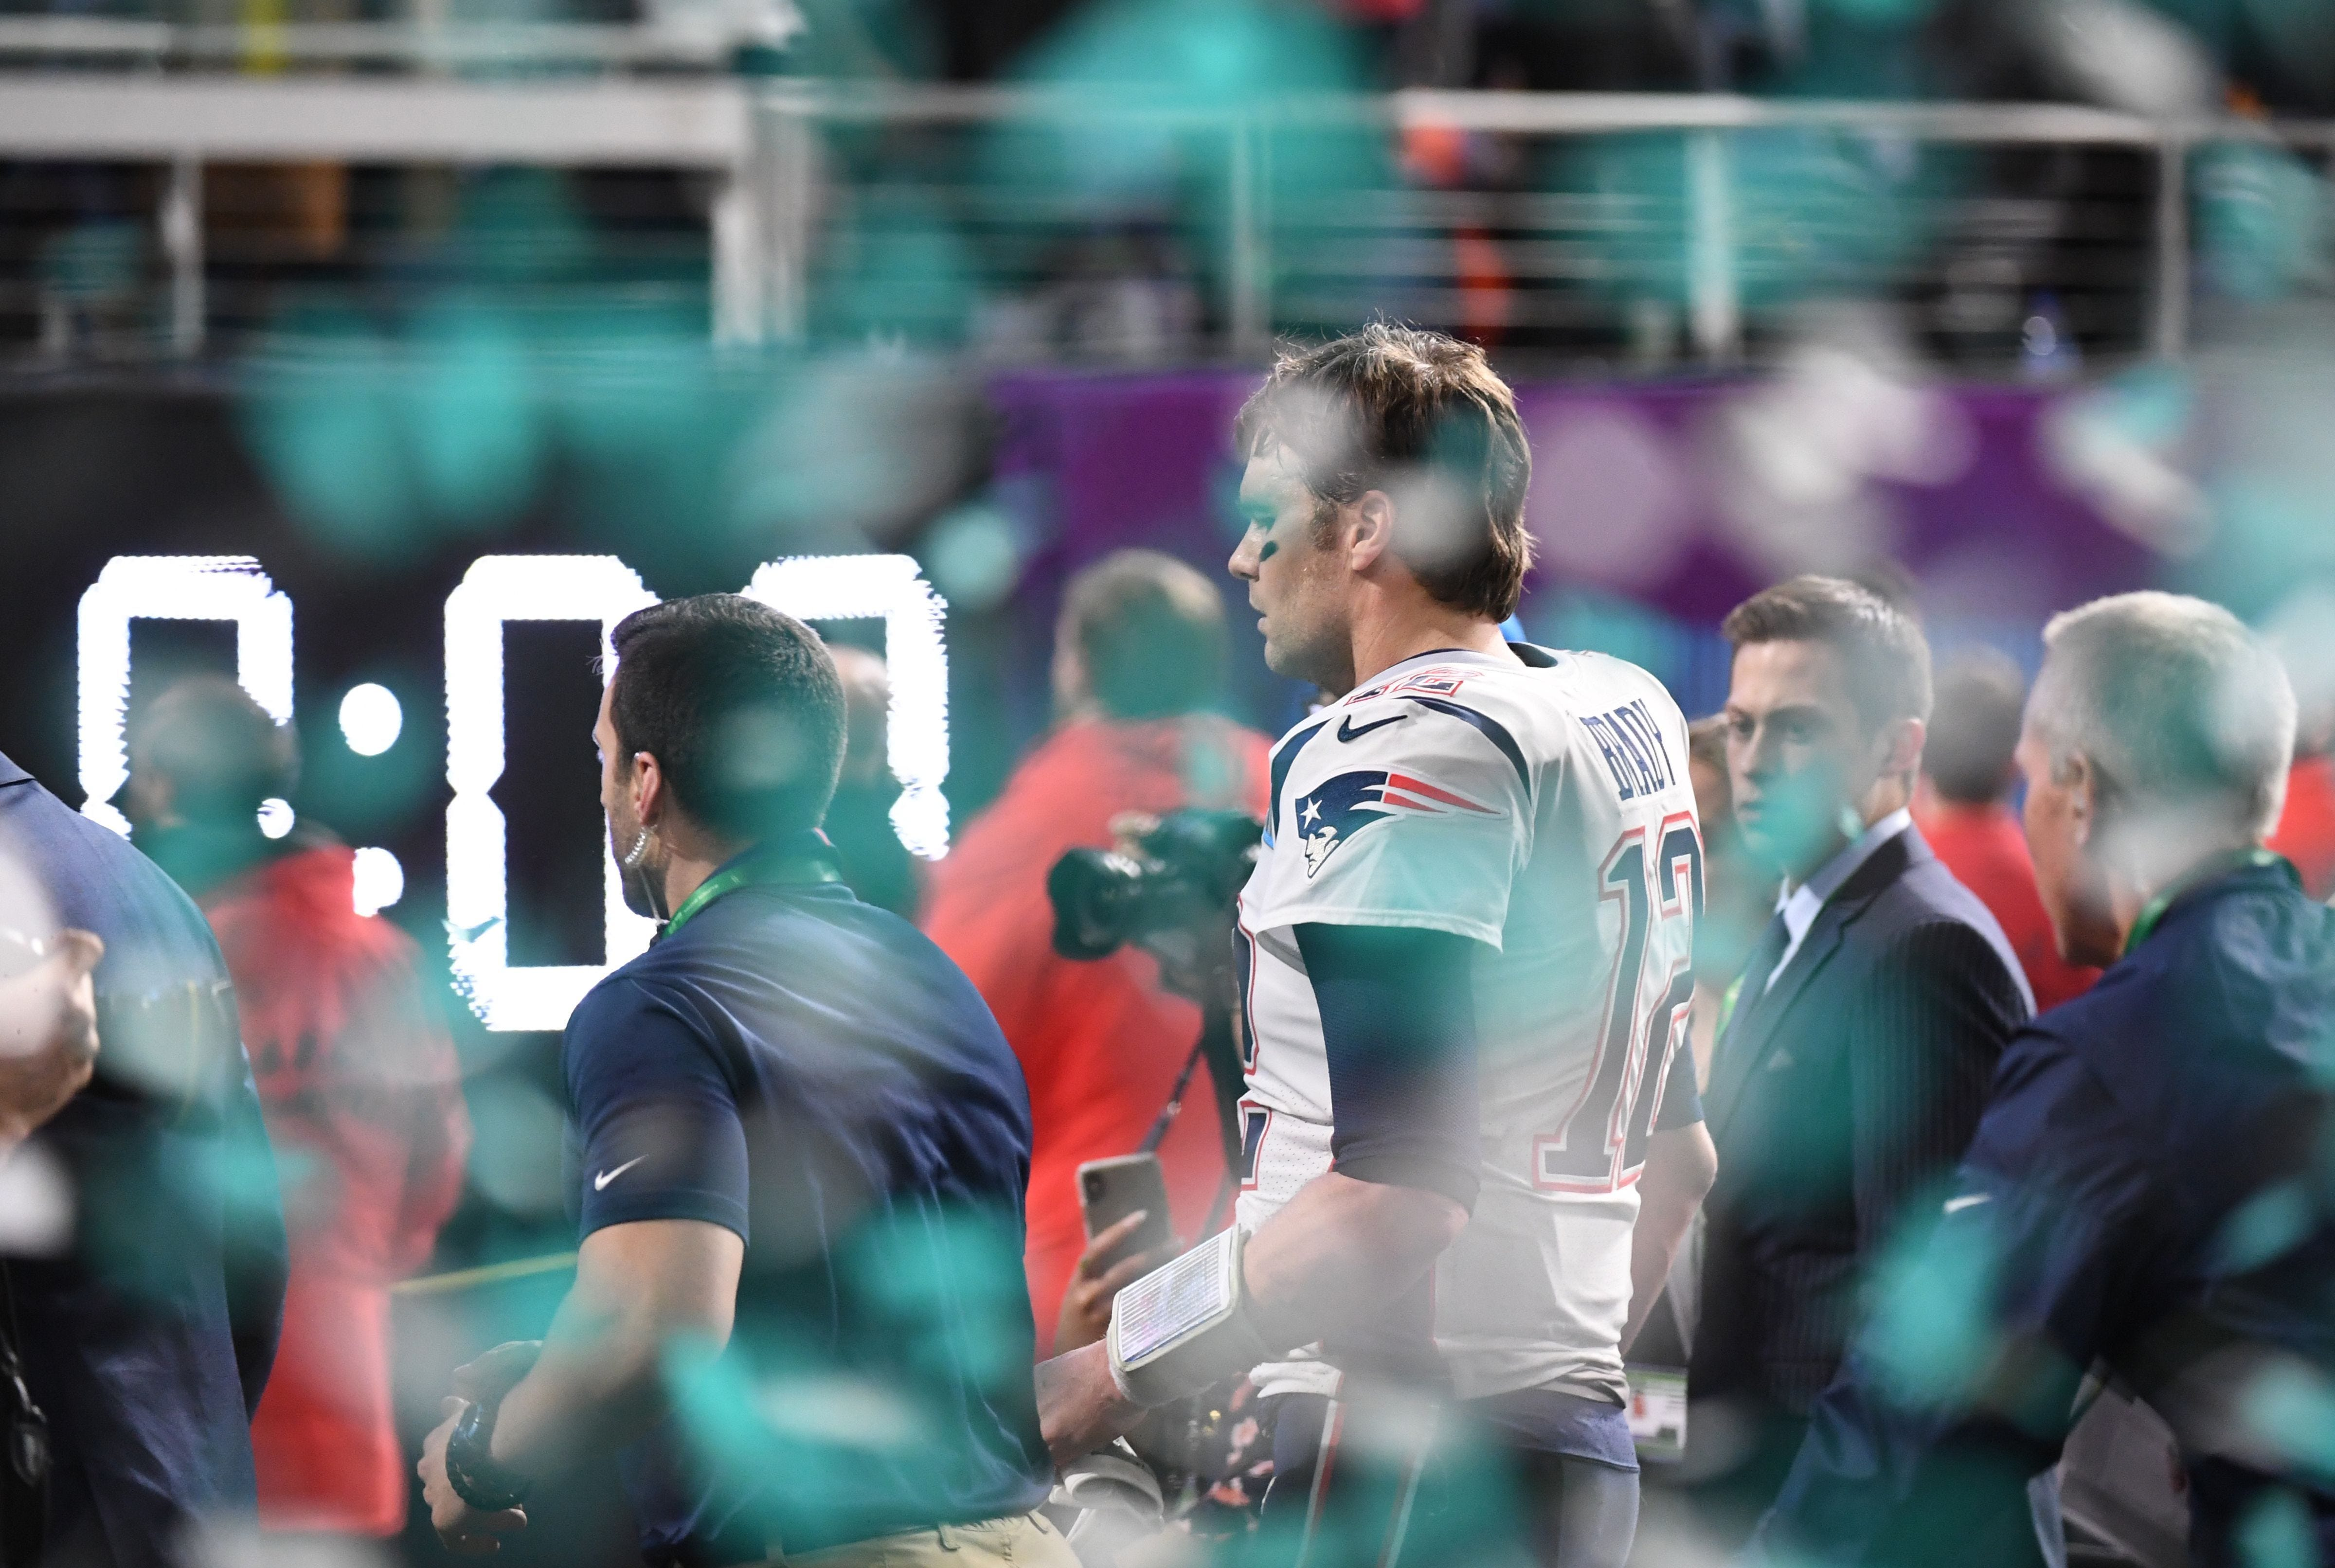 Brady's sportsmanship plays out behind the scenes